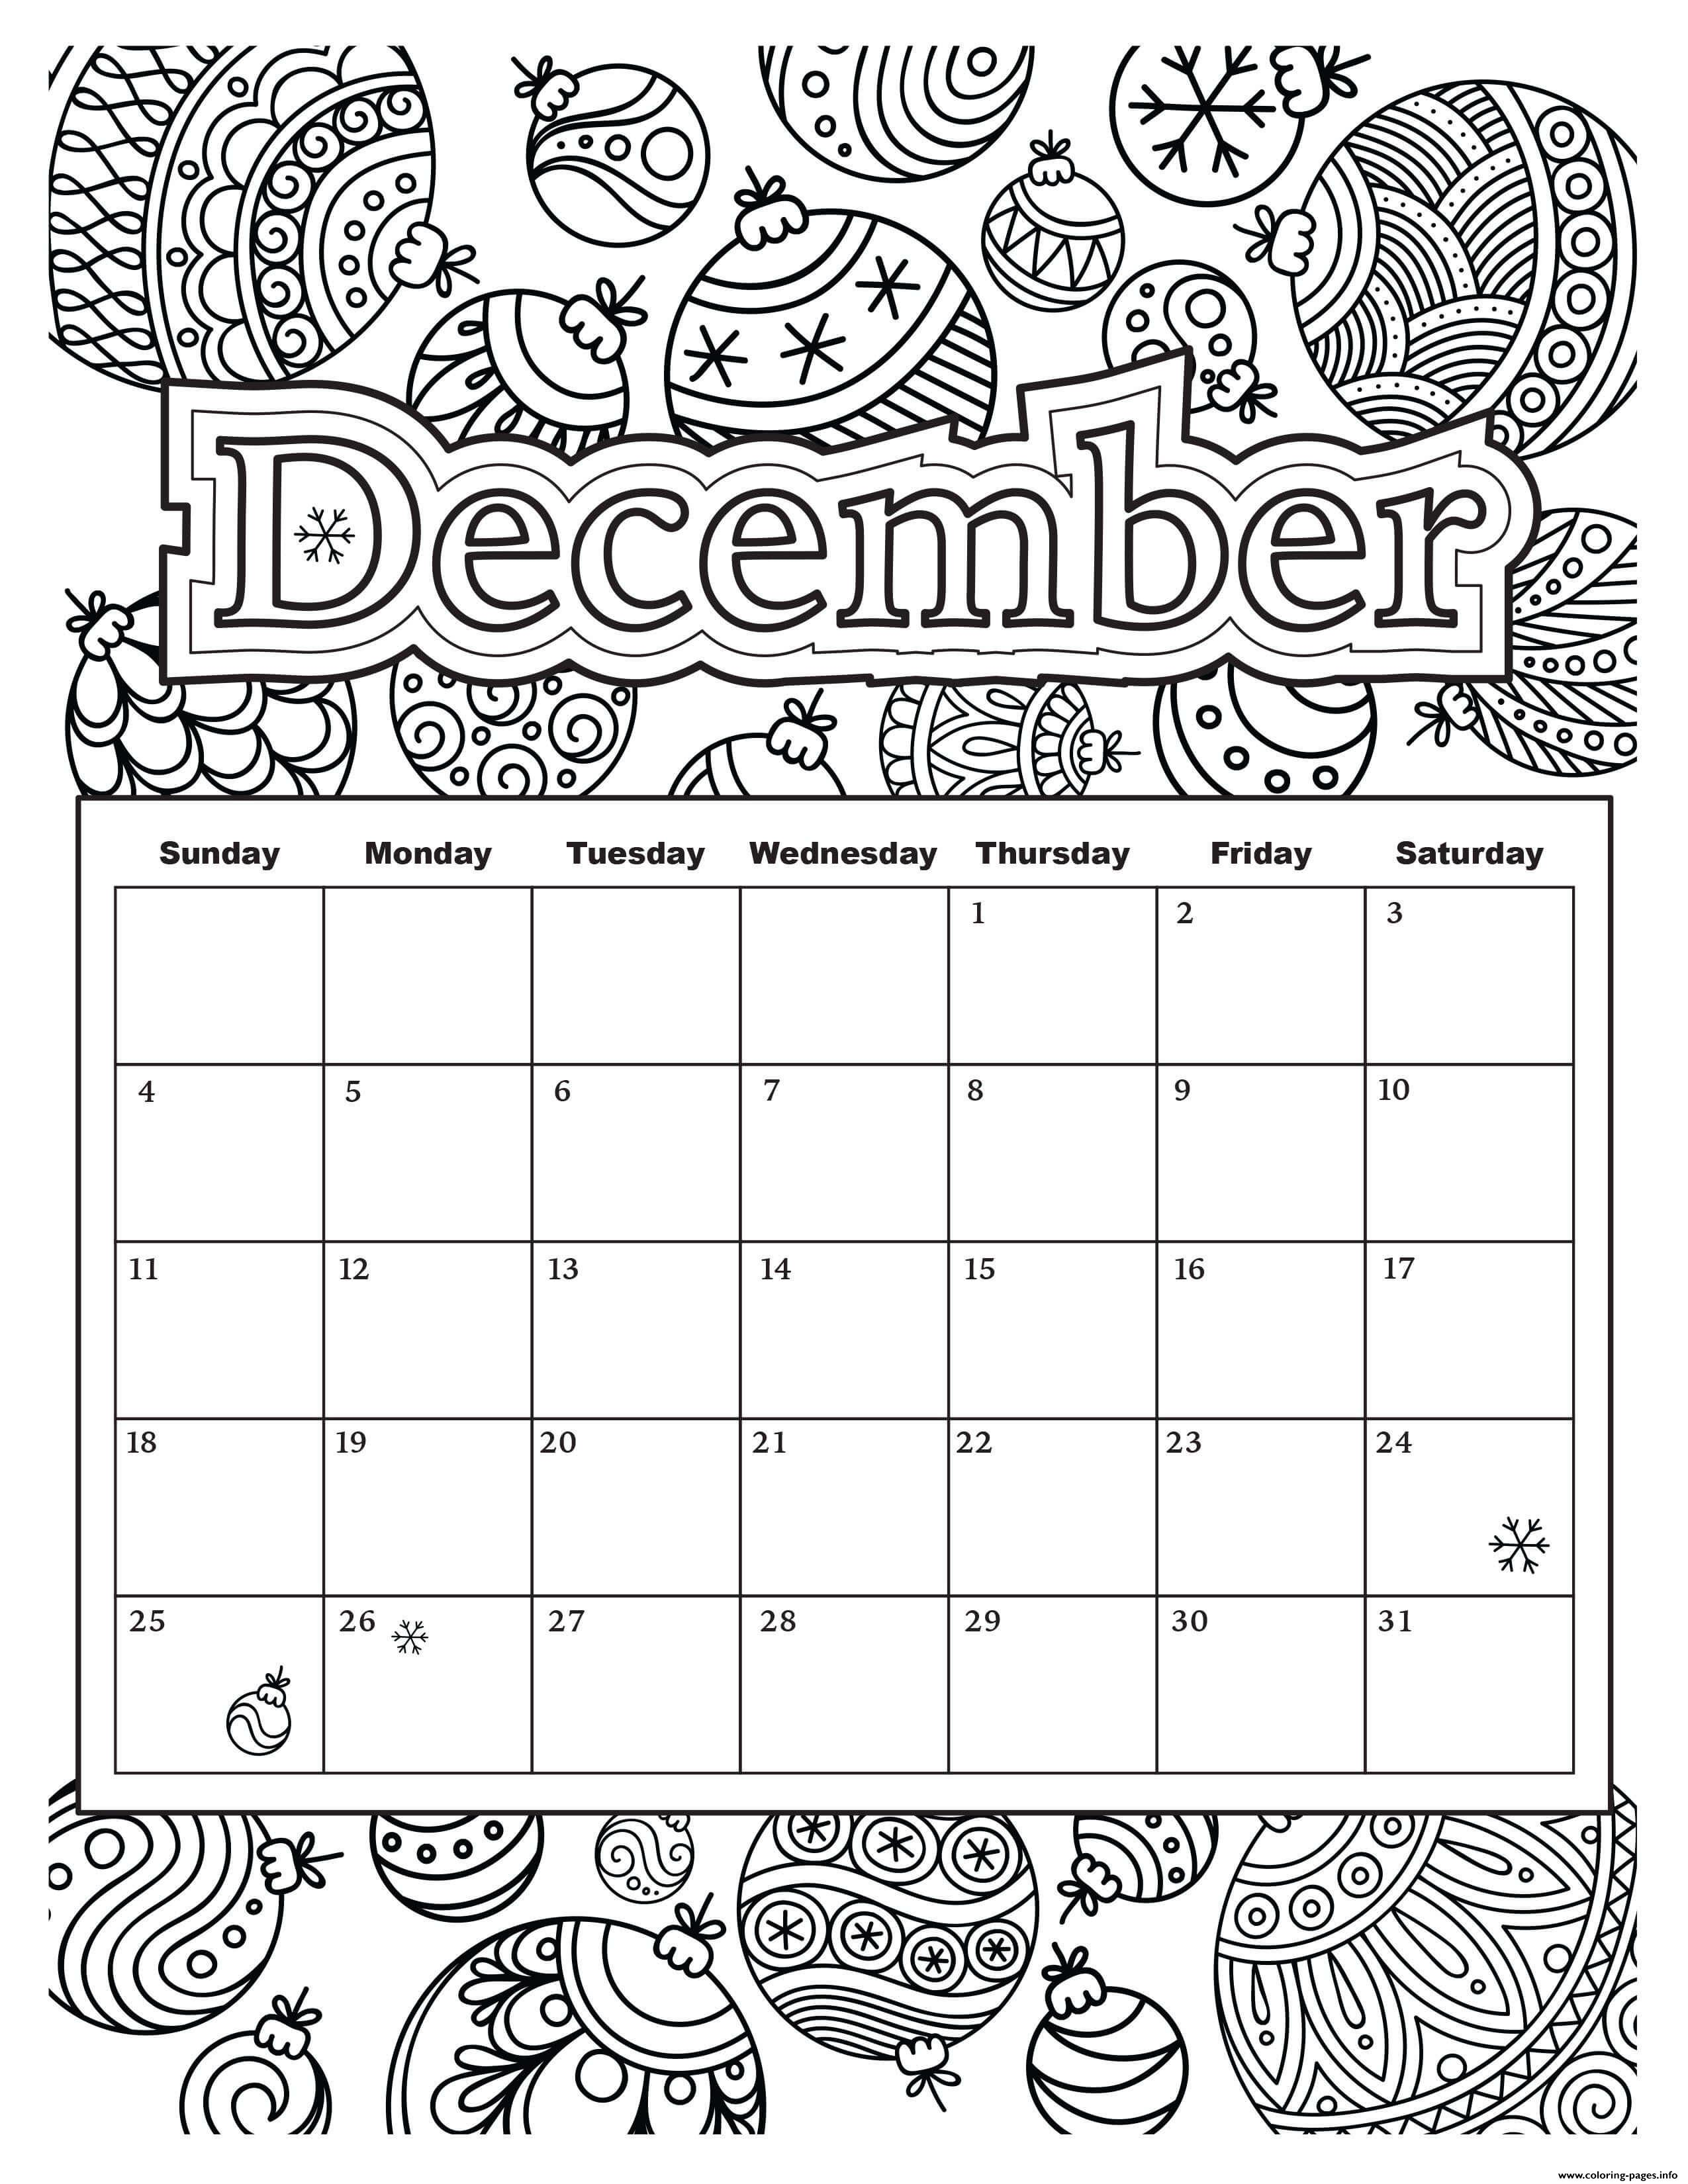 December Calendar Holiday Coloring Pages Printable